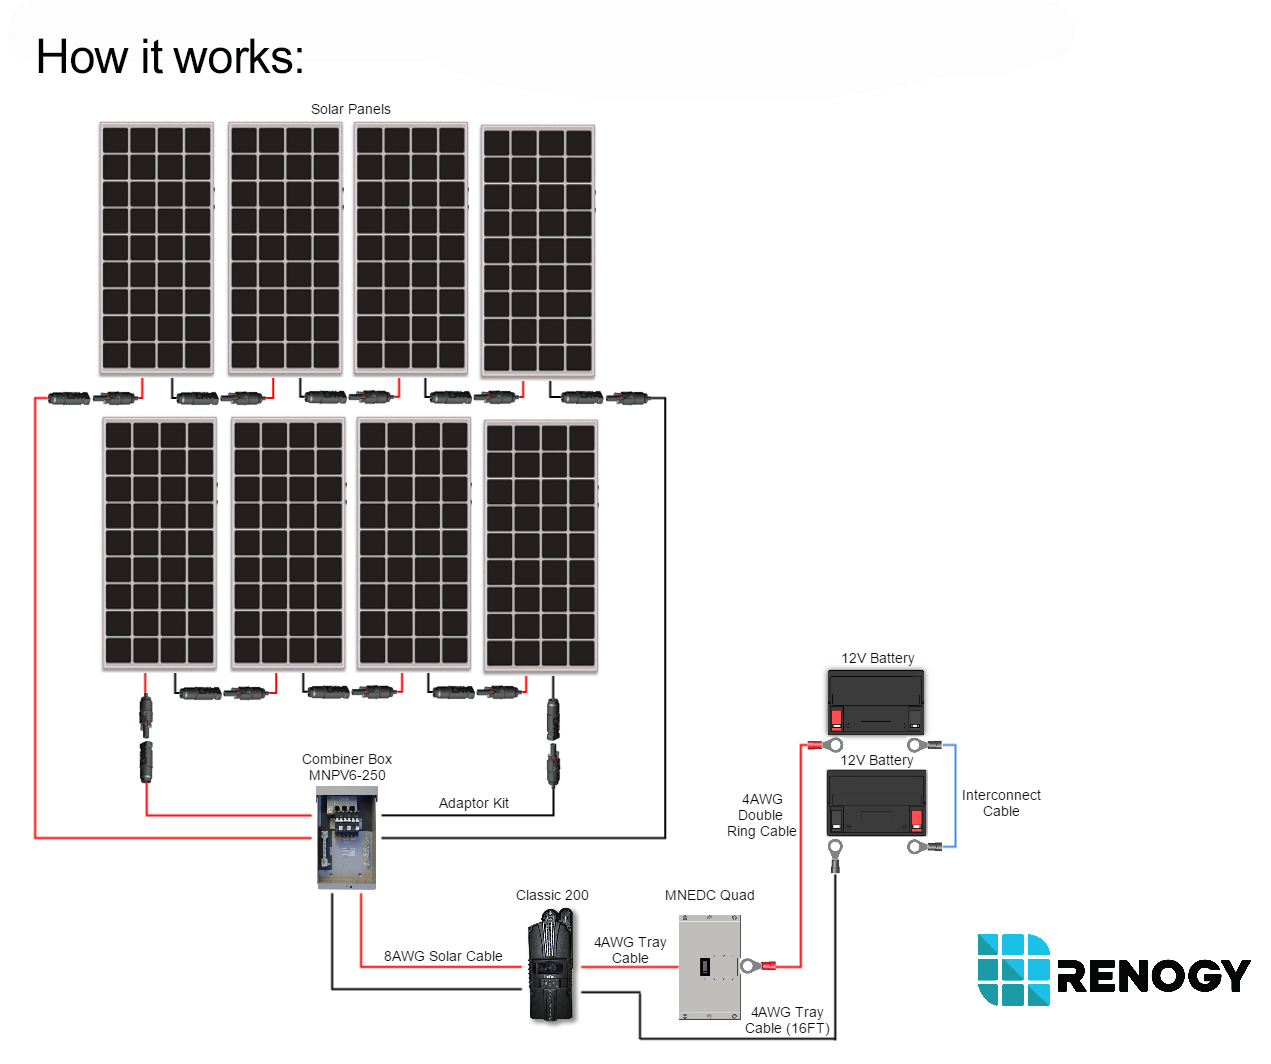 Solar Panel Installation Renogy Digital Pwm Charge Controller Missouri Wind And Images